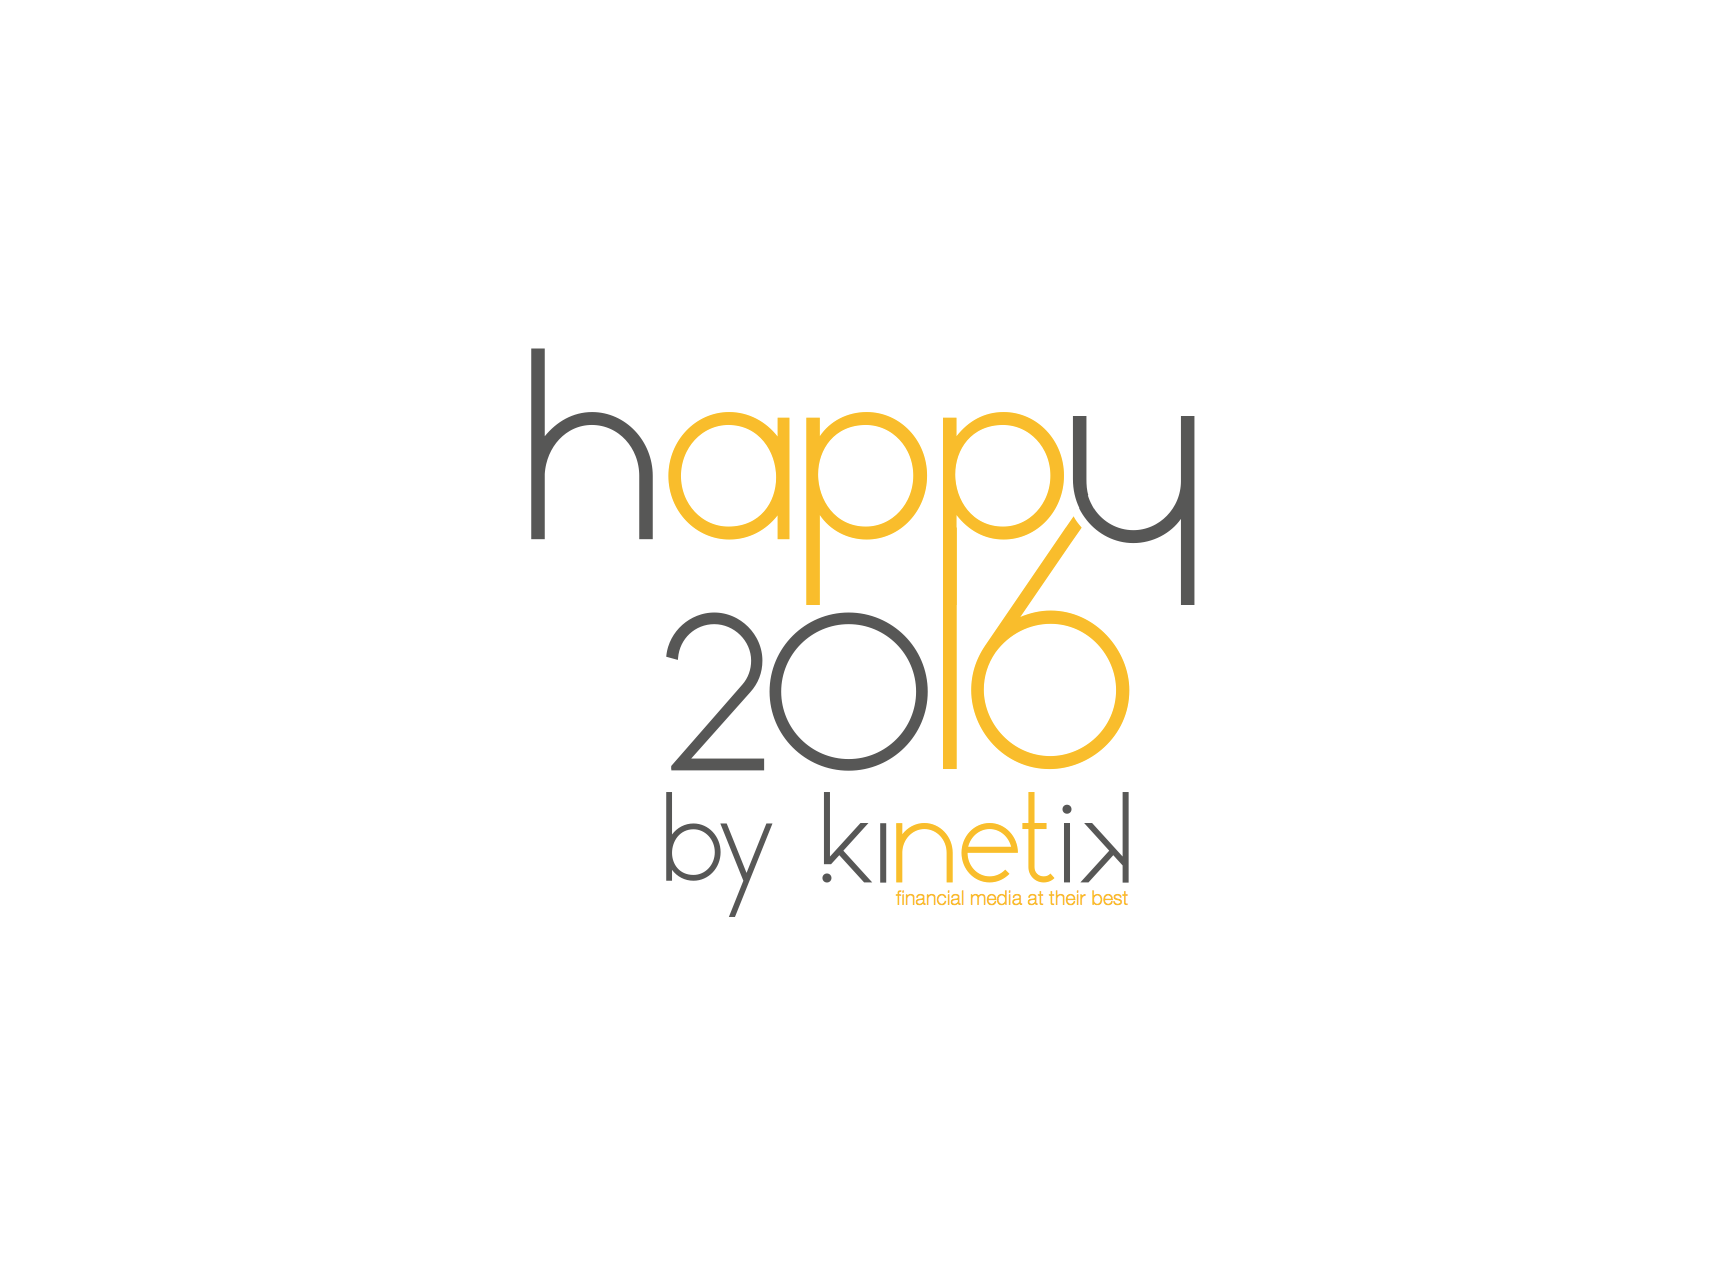 Best wishes 2016